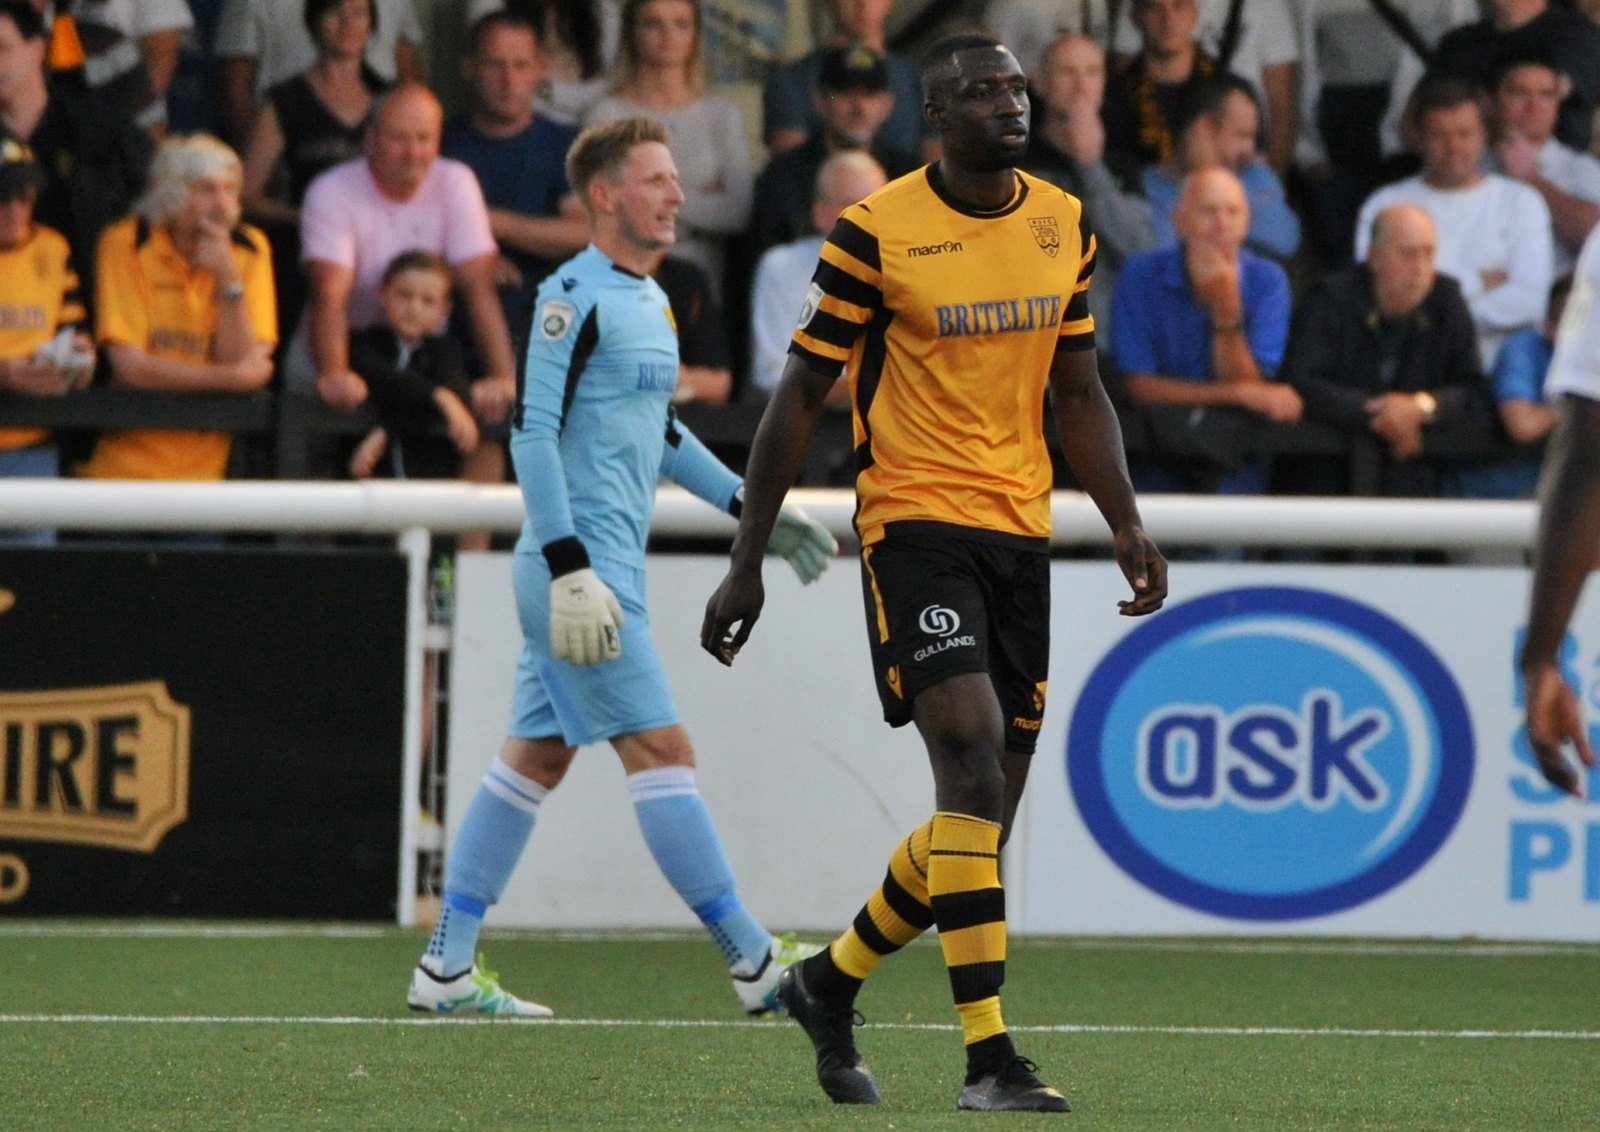 Maidstone United v Braintree Town 142